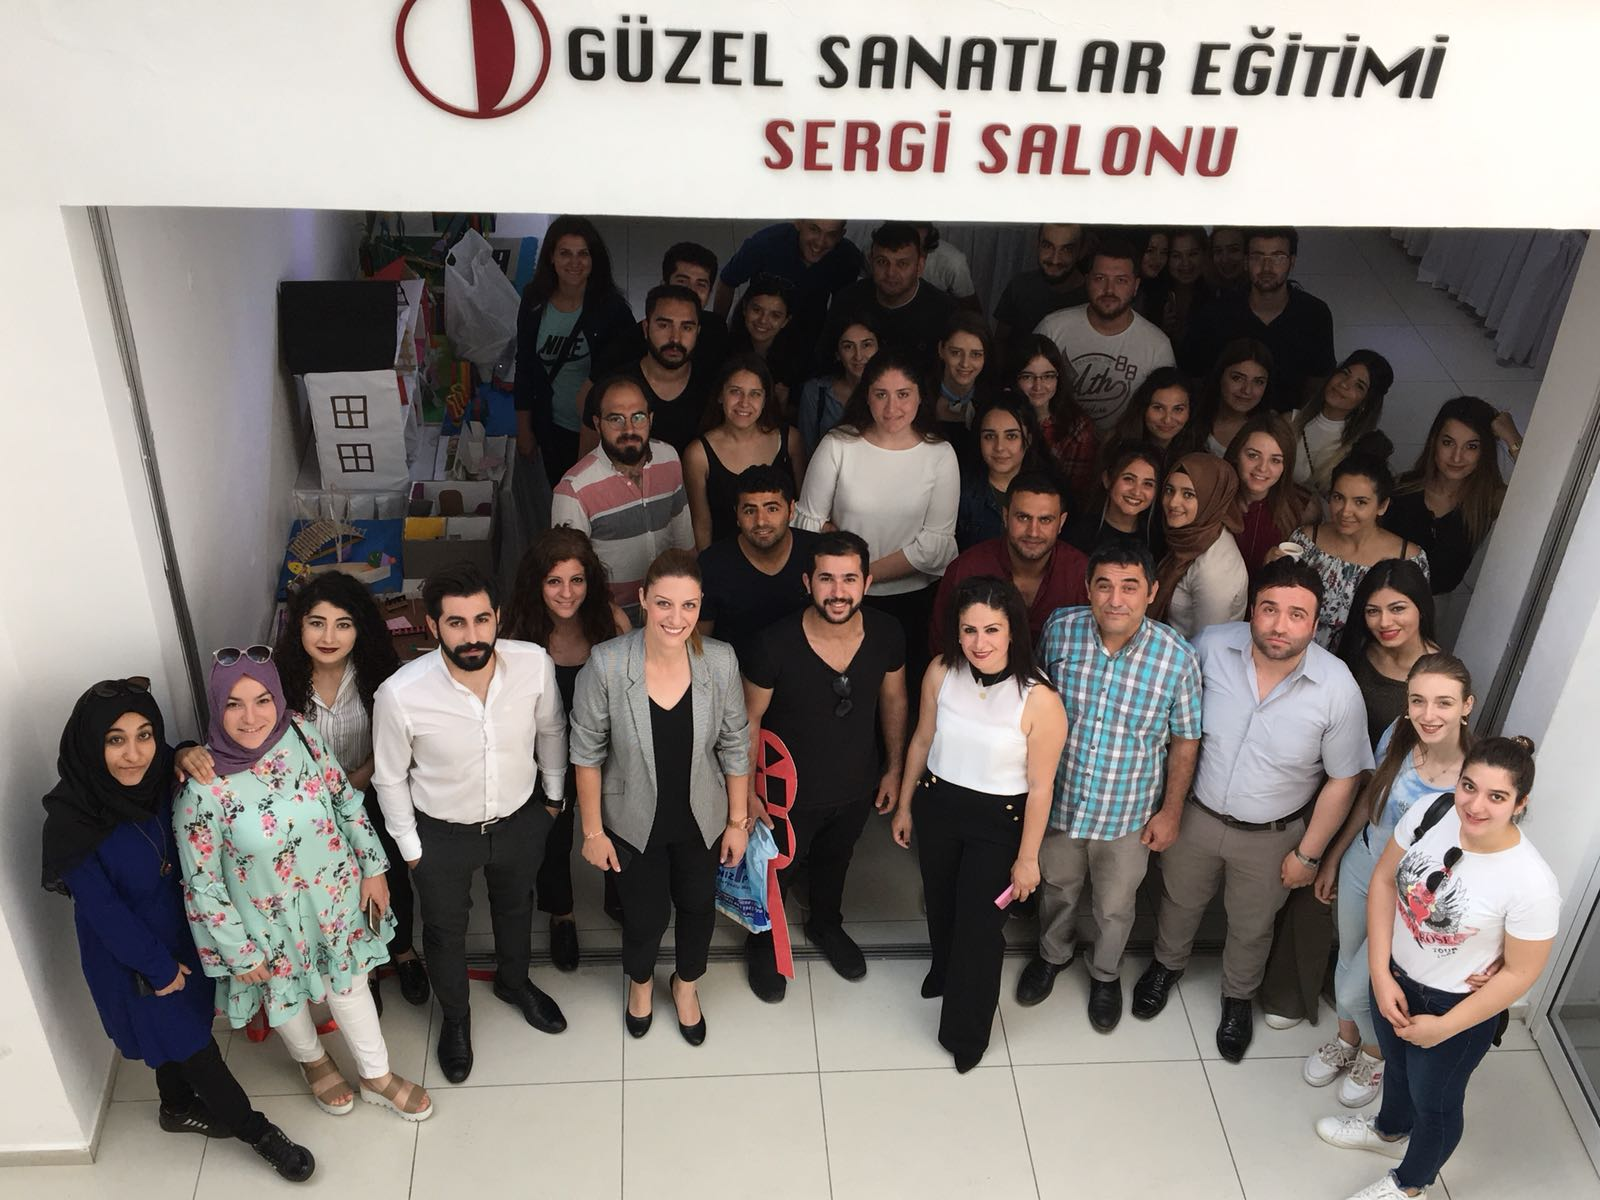 The Mixed Material Exhibition of Near East University Atatürk Faculty of Education attracted a lot of attention